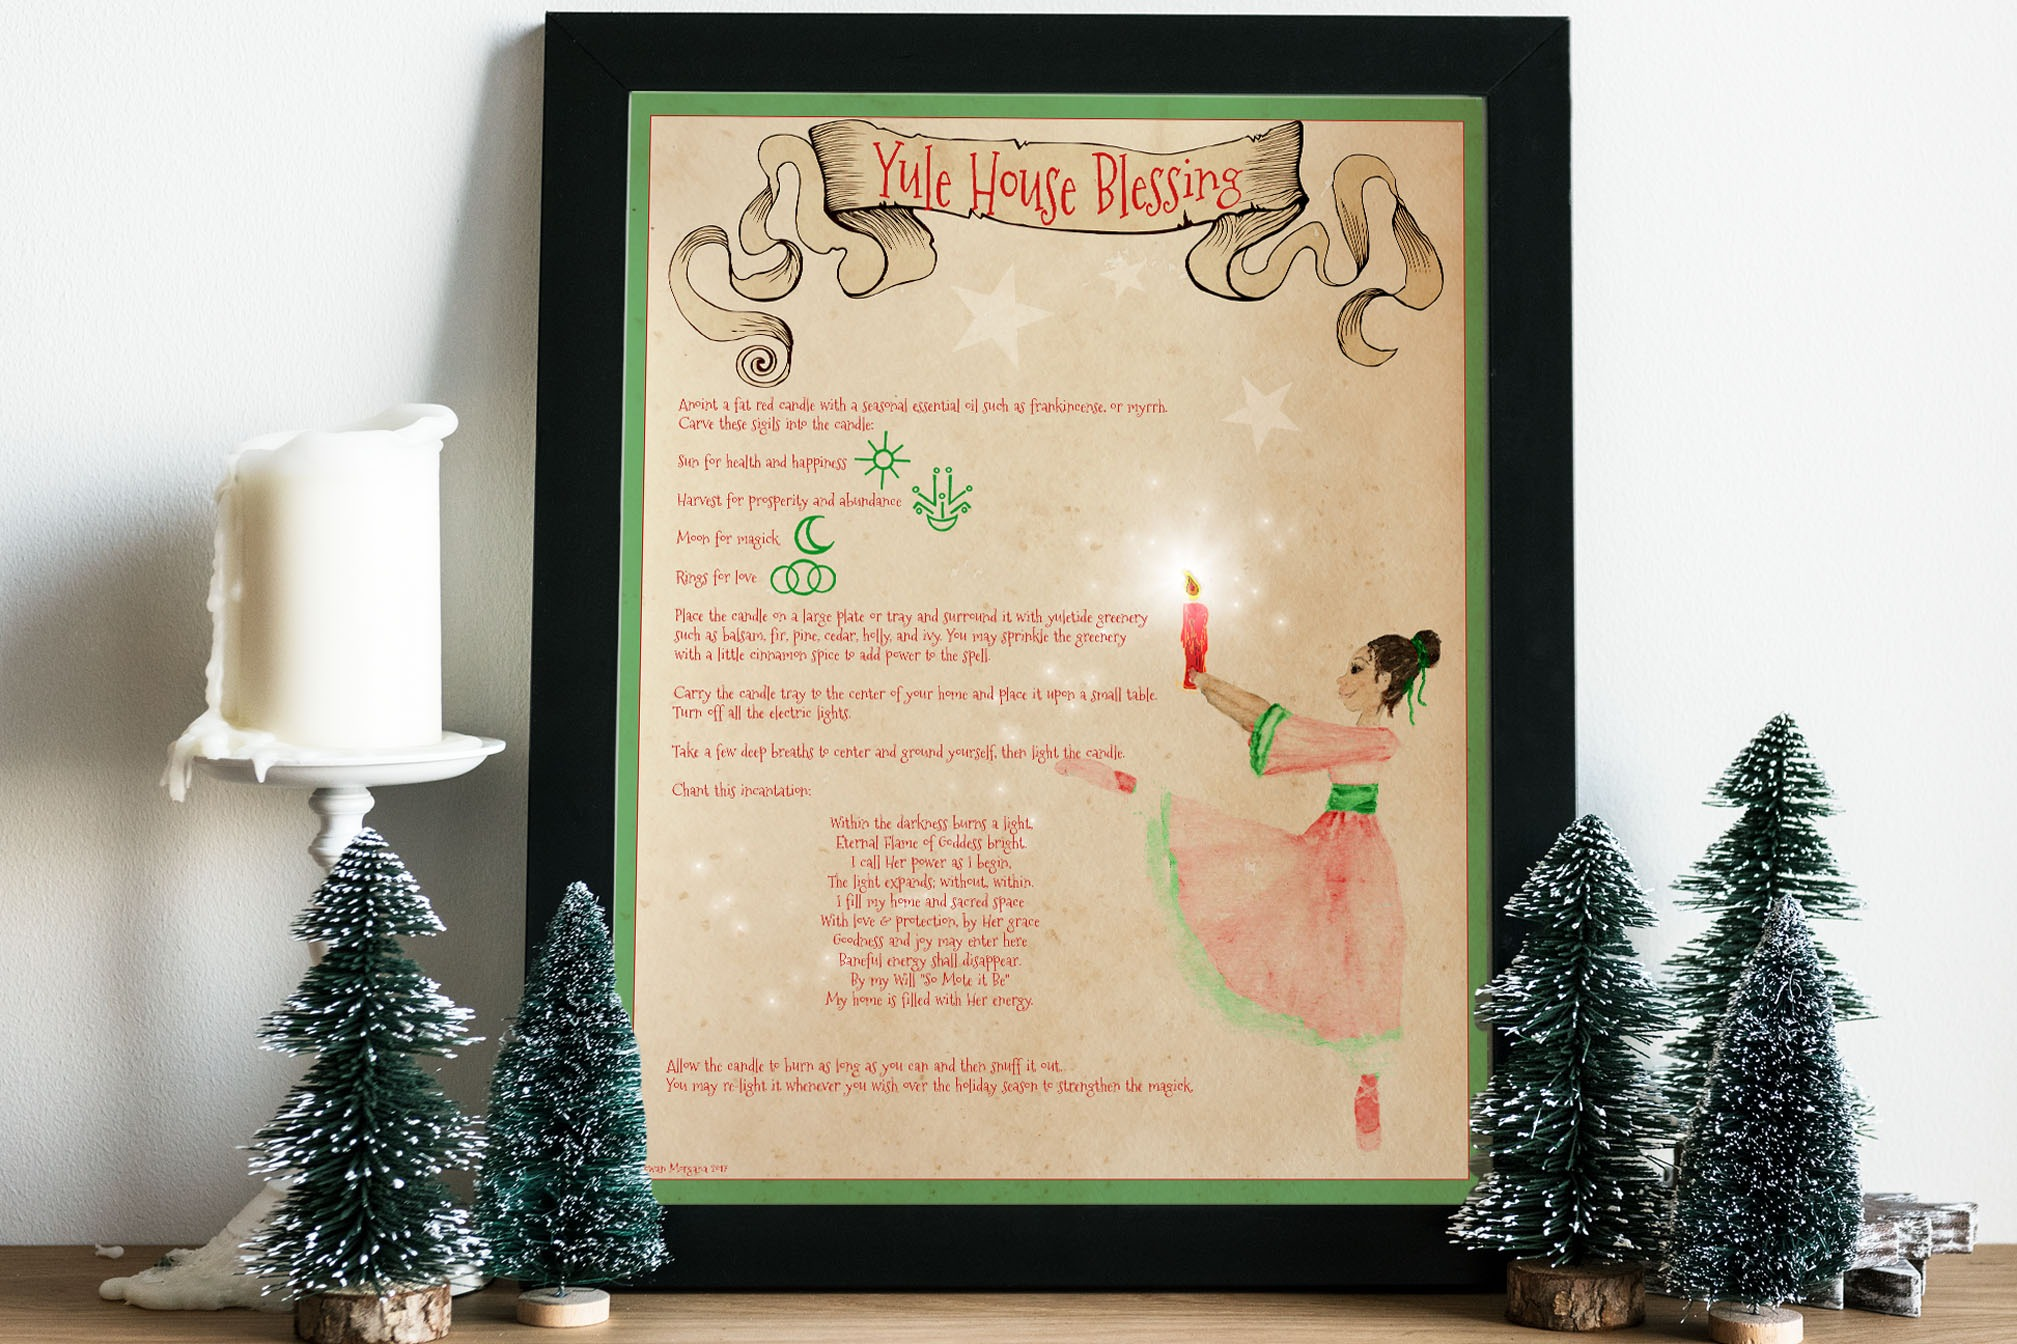 YULE HOUSE BLESSING